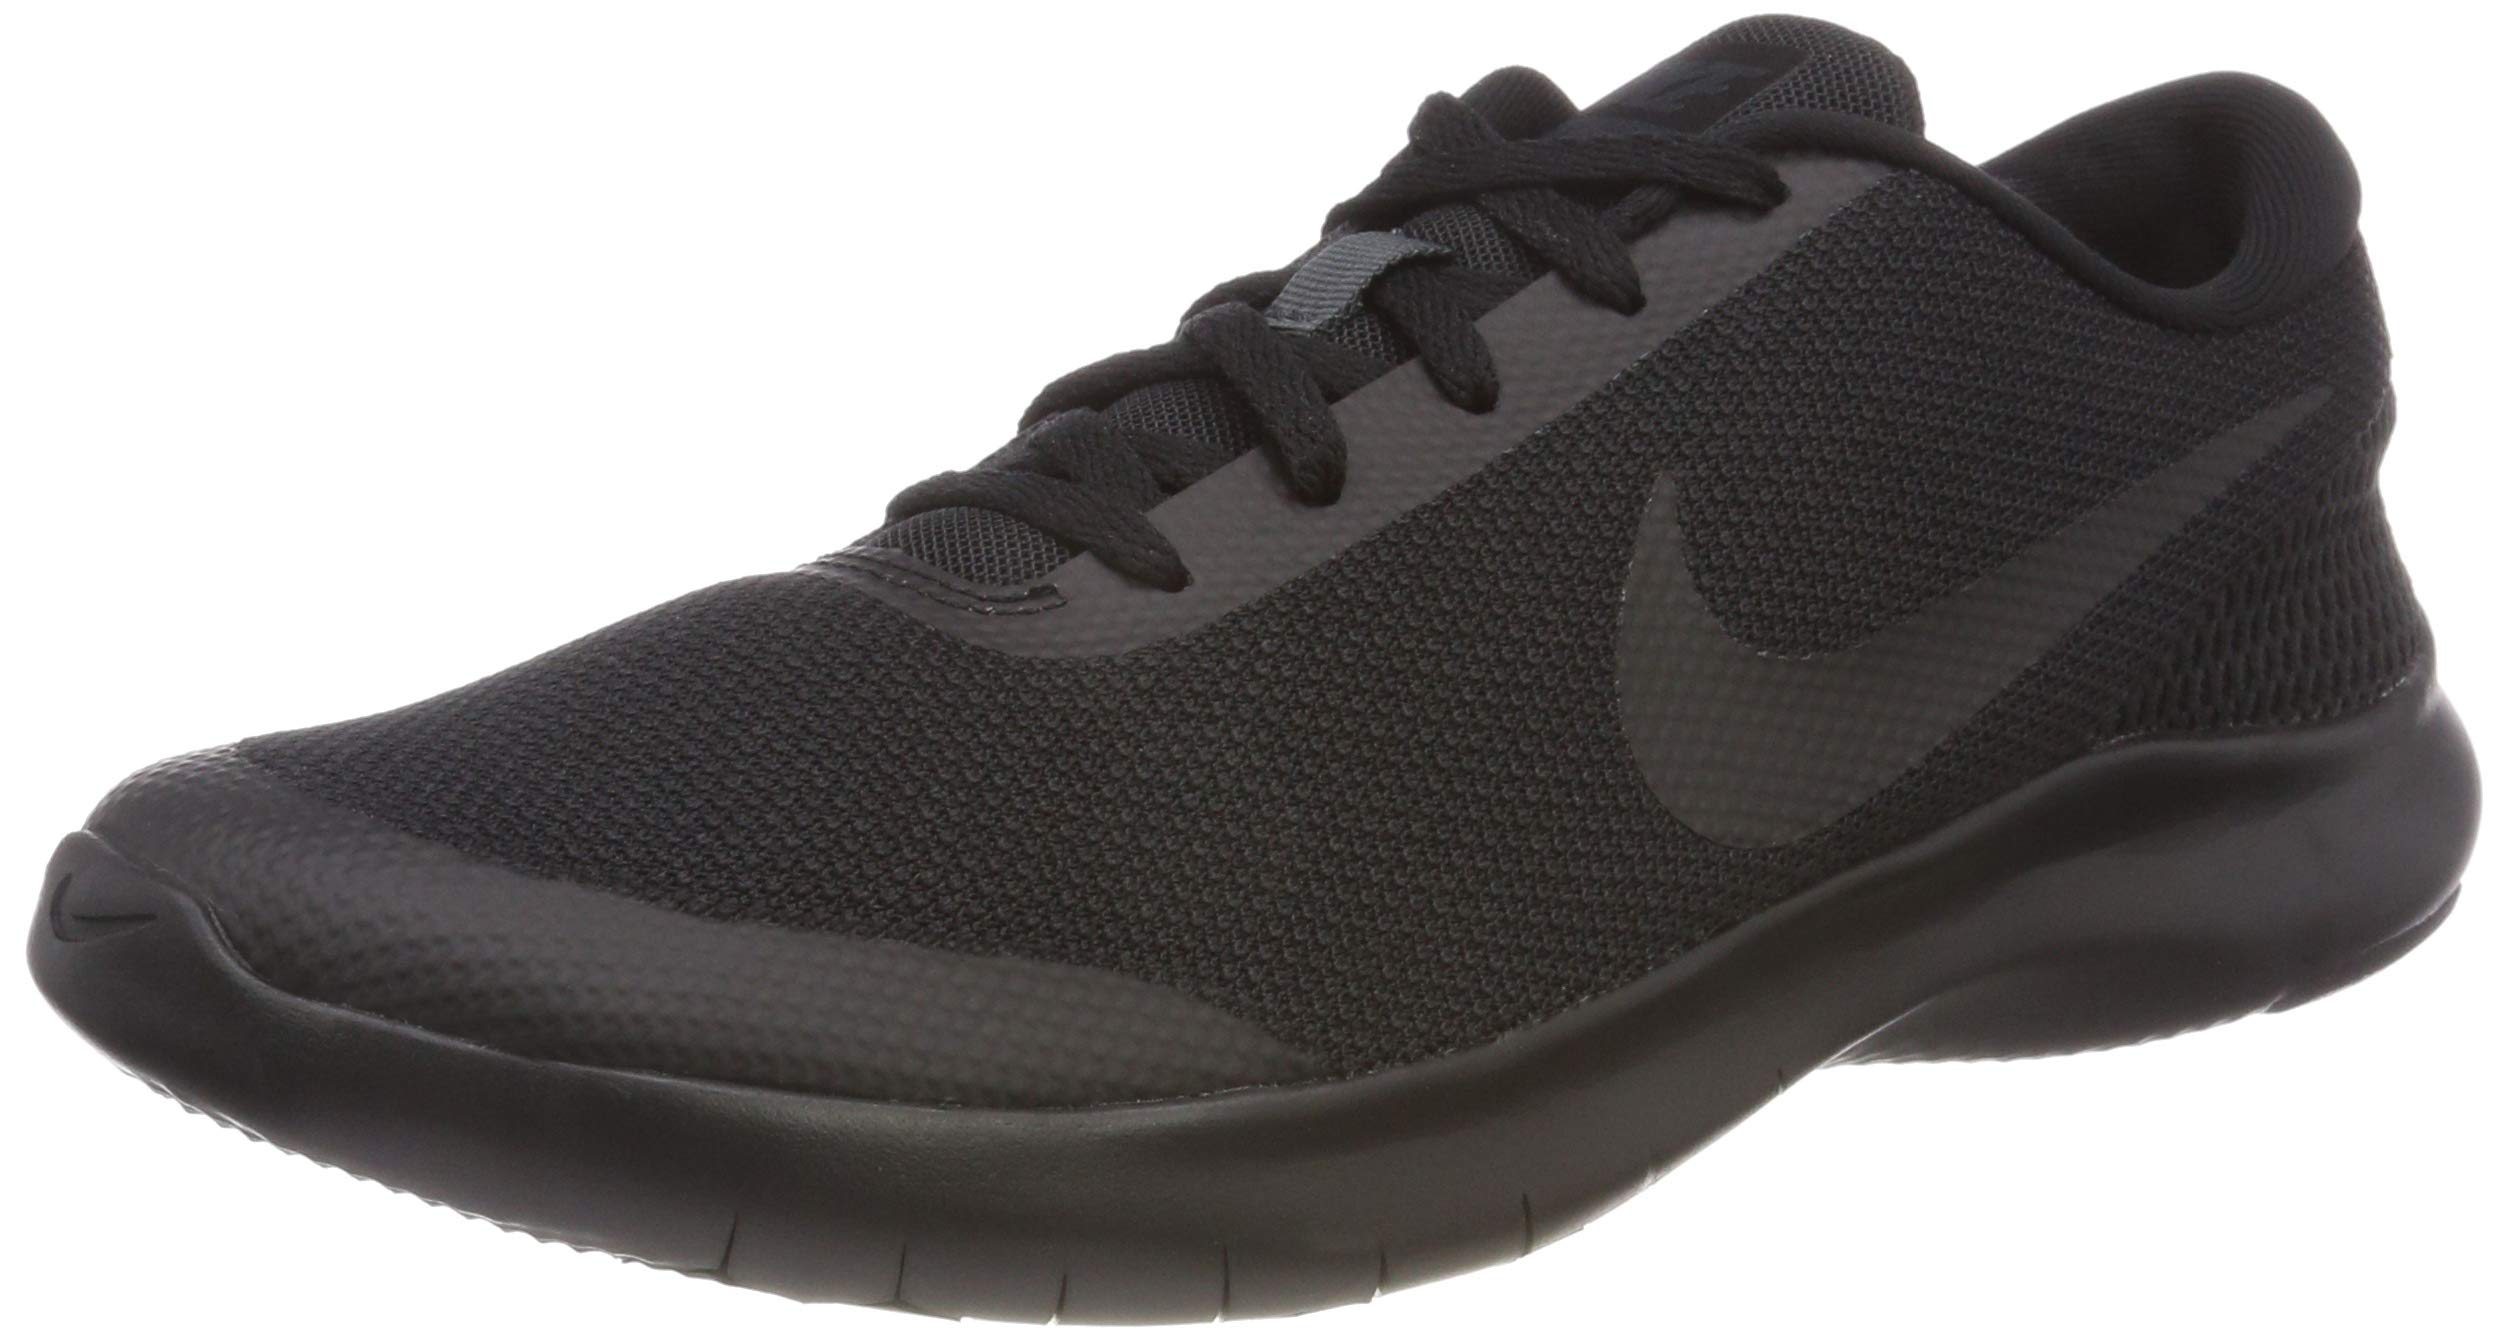 NIKE Men's Flex Experience 7 Running Shoe, Black/Black-Anthracite, 11 Regular US by NIKE